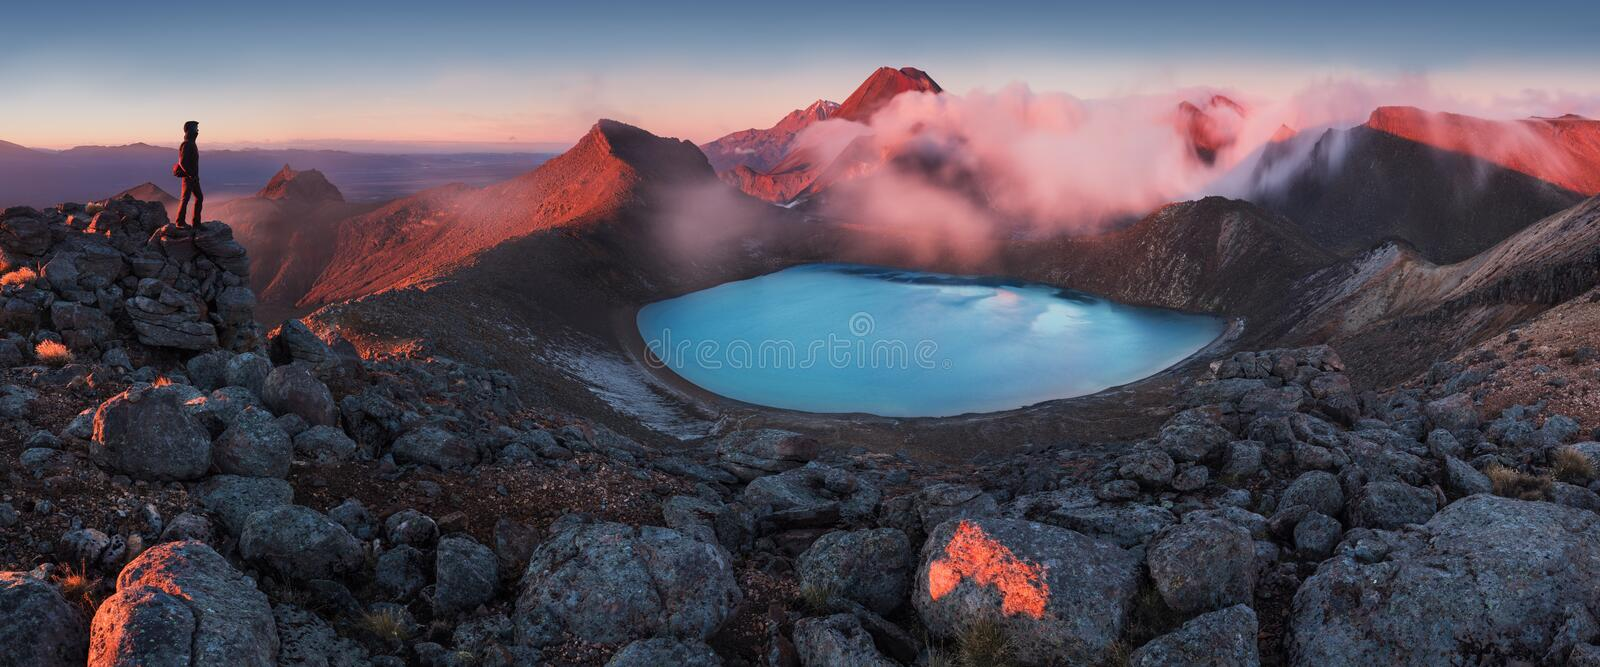 Mountains and silhouette of standing man. Early morning sunrise, landscape scenery of blue lake, wild mountains and huge volcano. stock photo